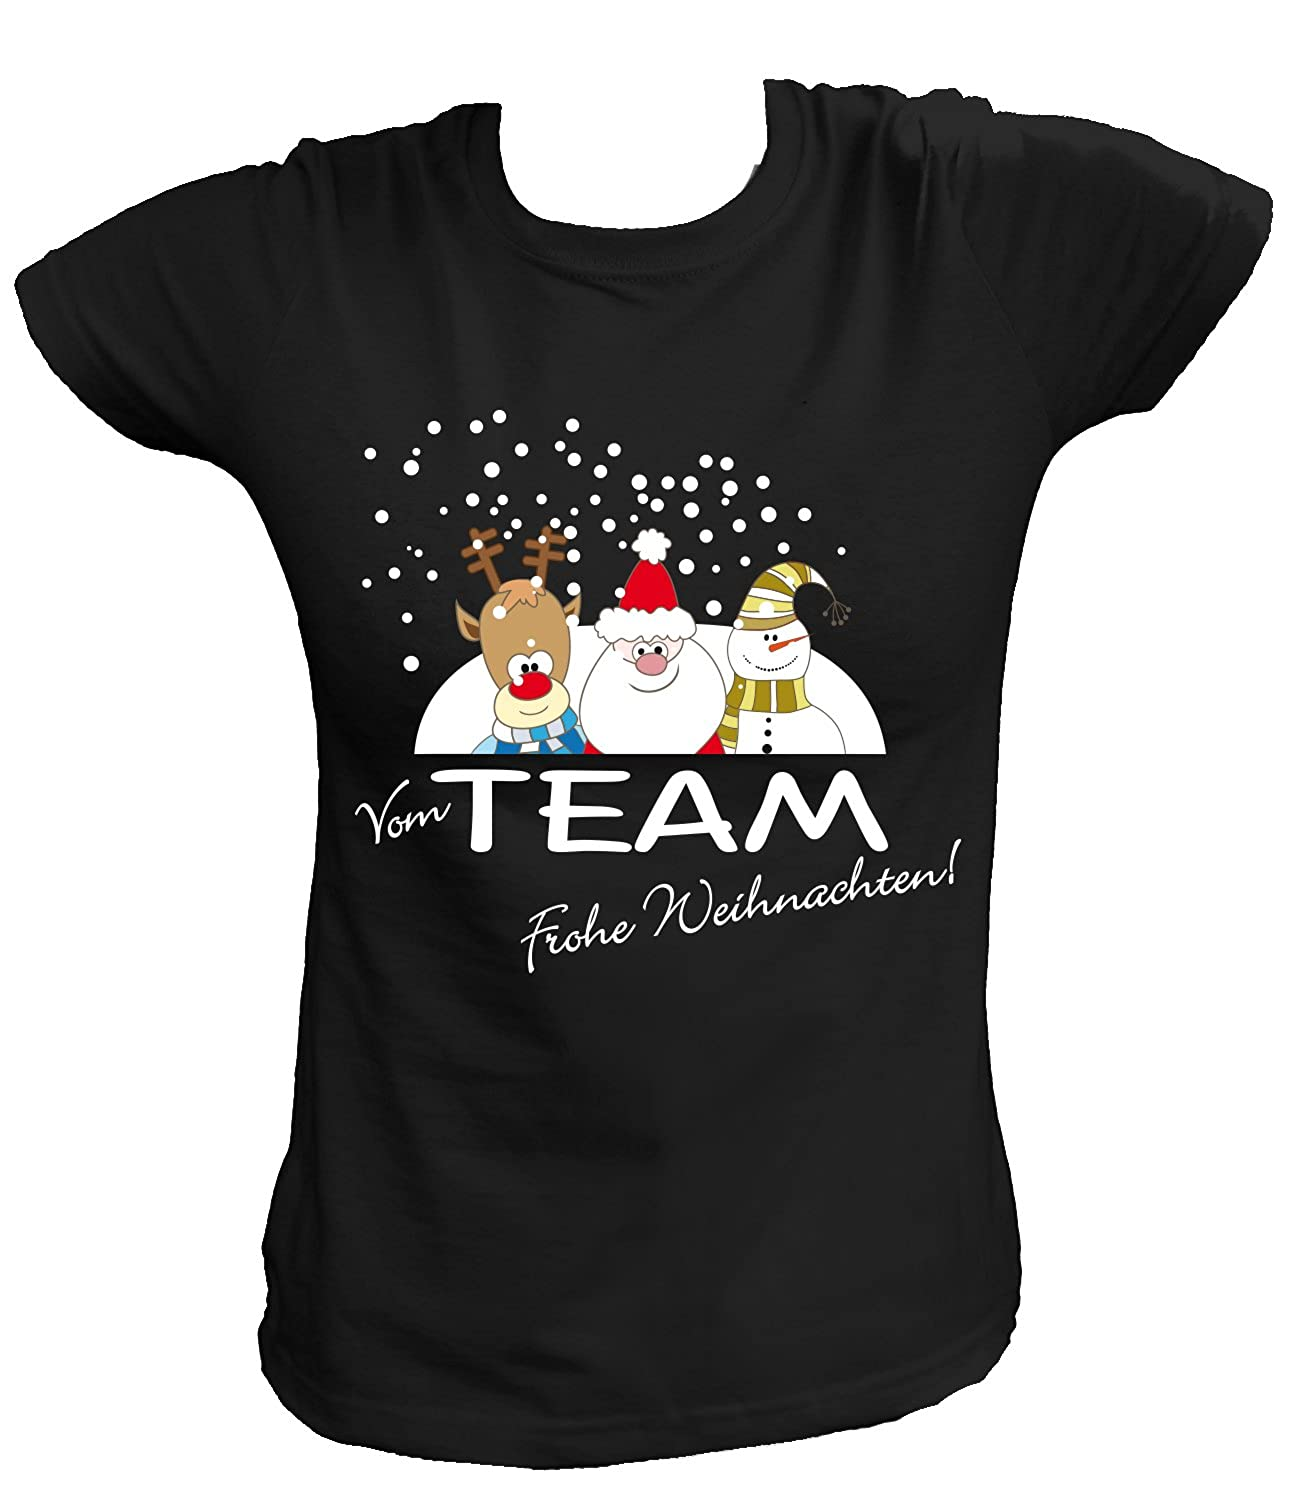 Art Team Nero Dal Shirt Buon Donna T Amazon 44 Natale Diktat Da RqZRCUw